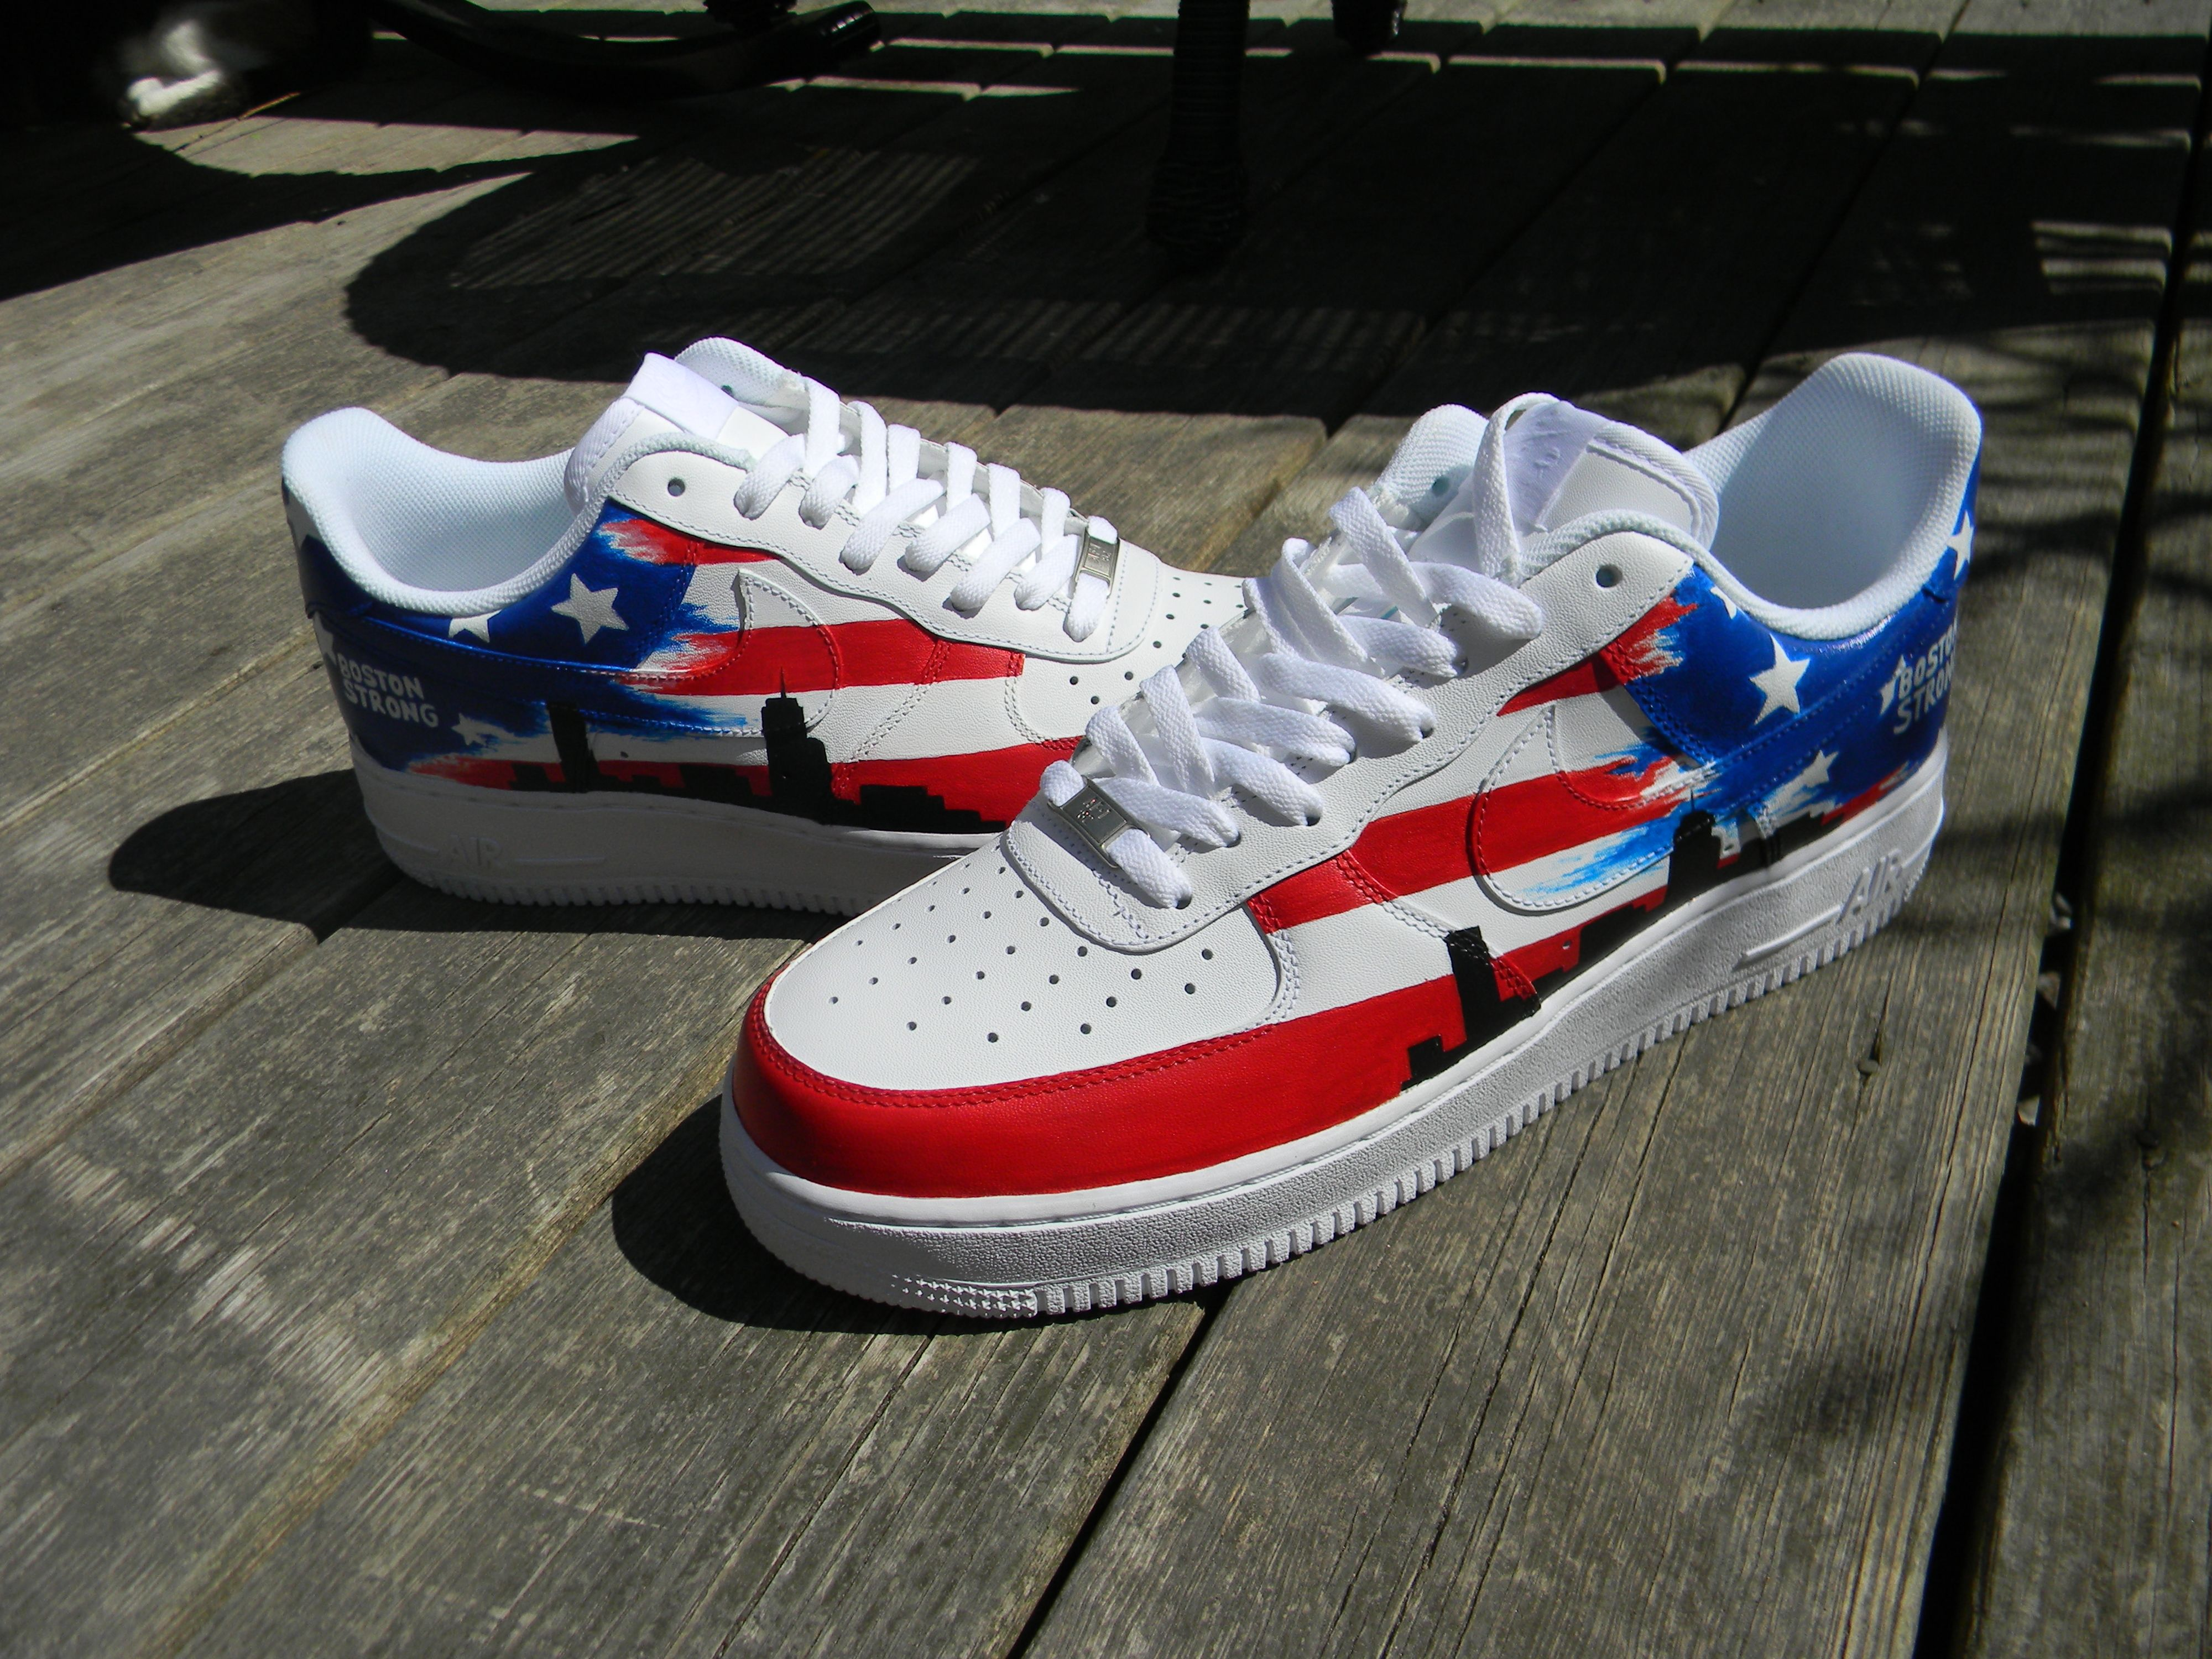 Custom Air Force Ones Are Up For Auction Boston Strong So Awesomebidding Ends 5 15